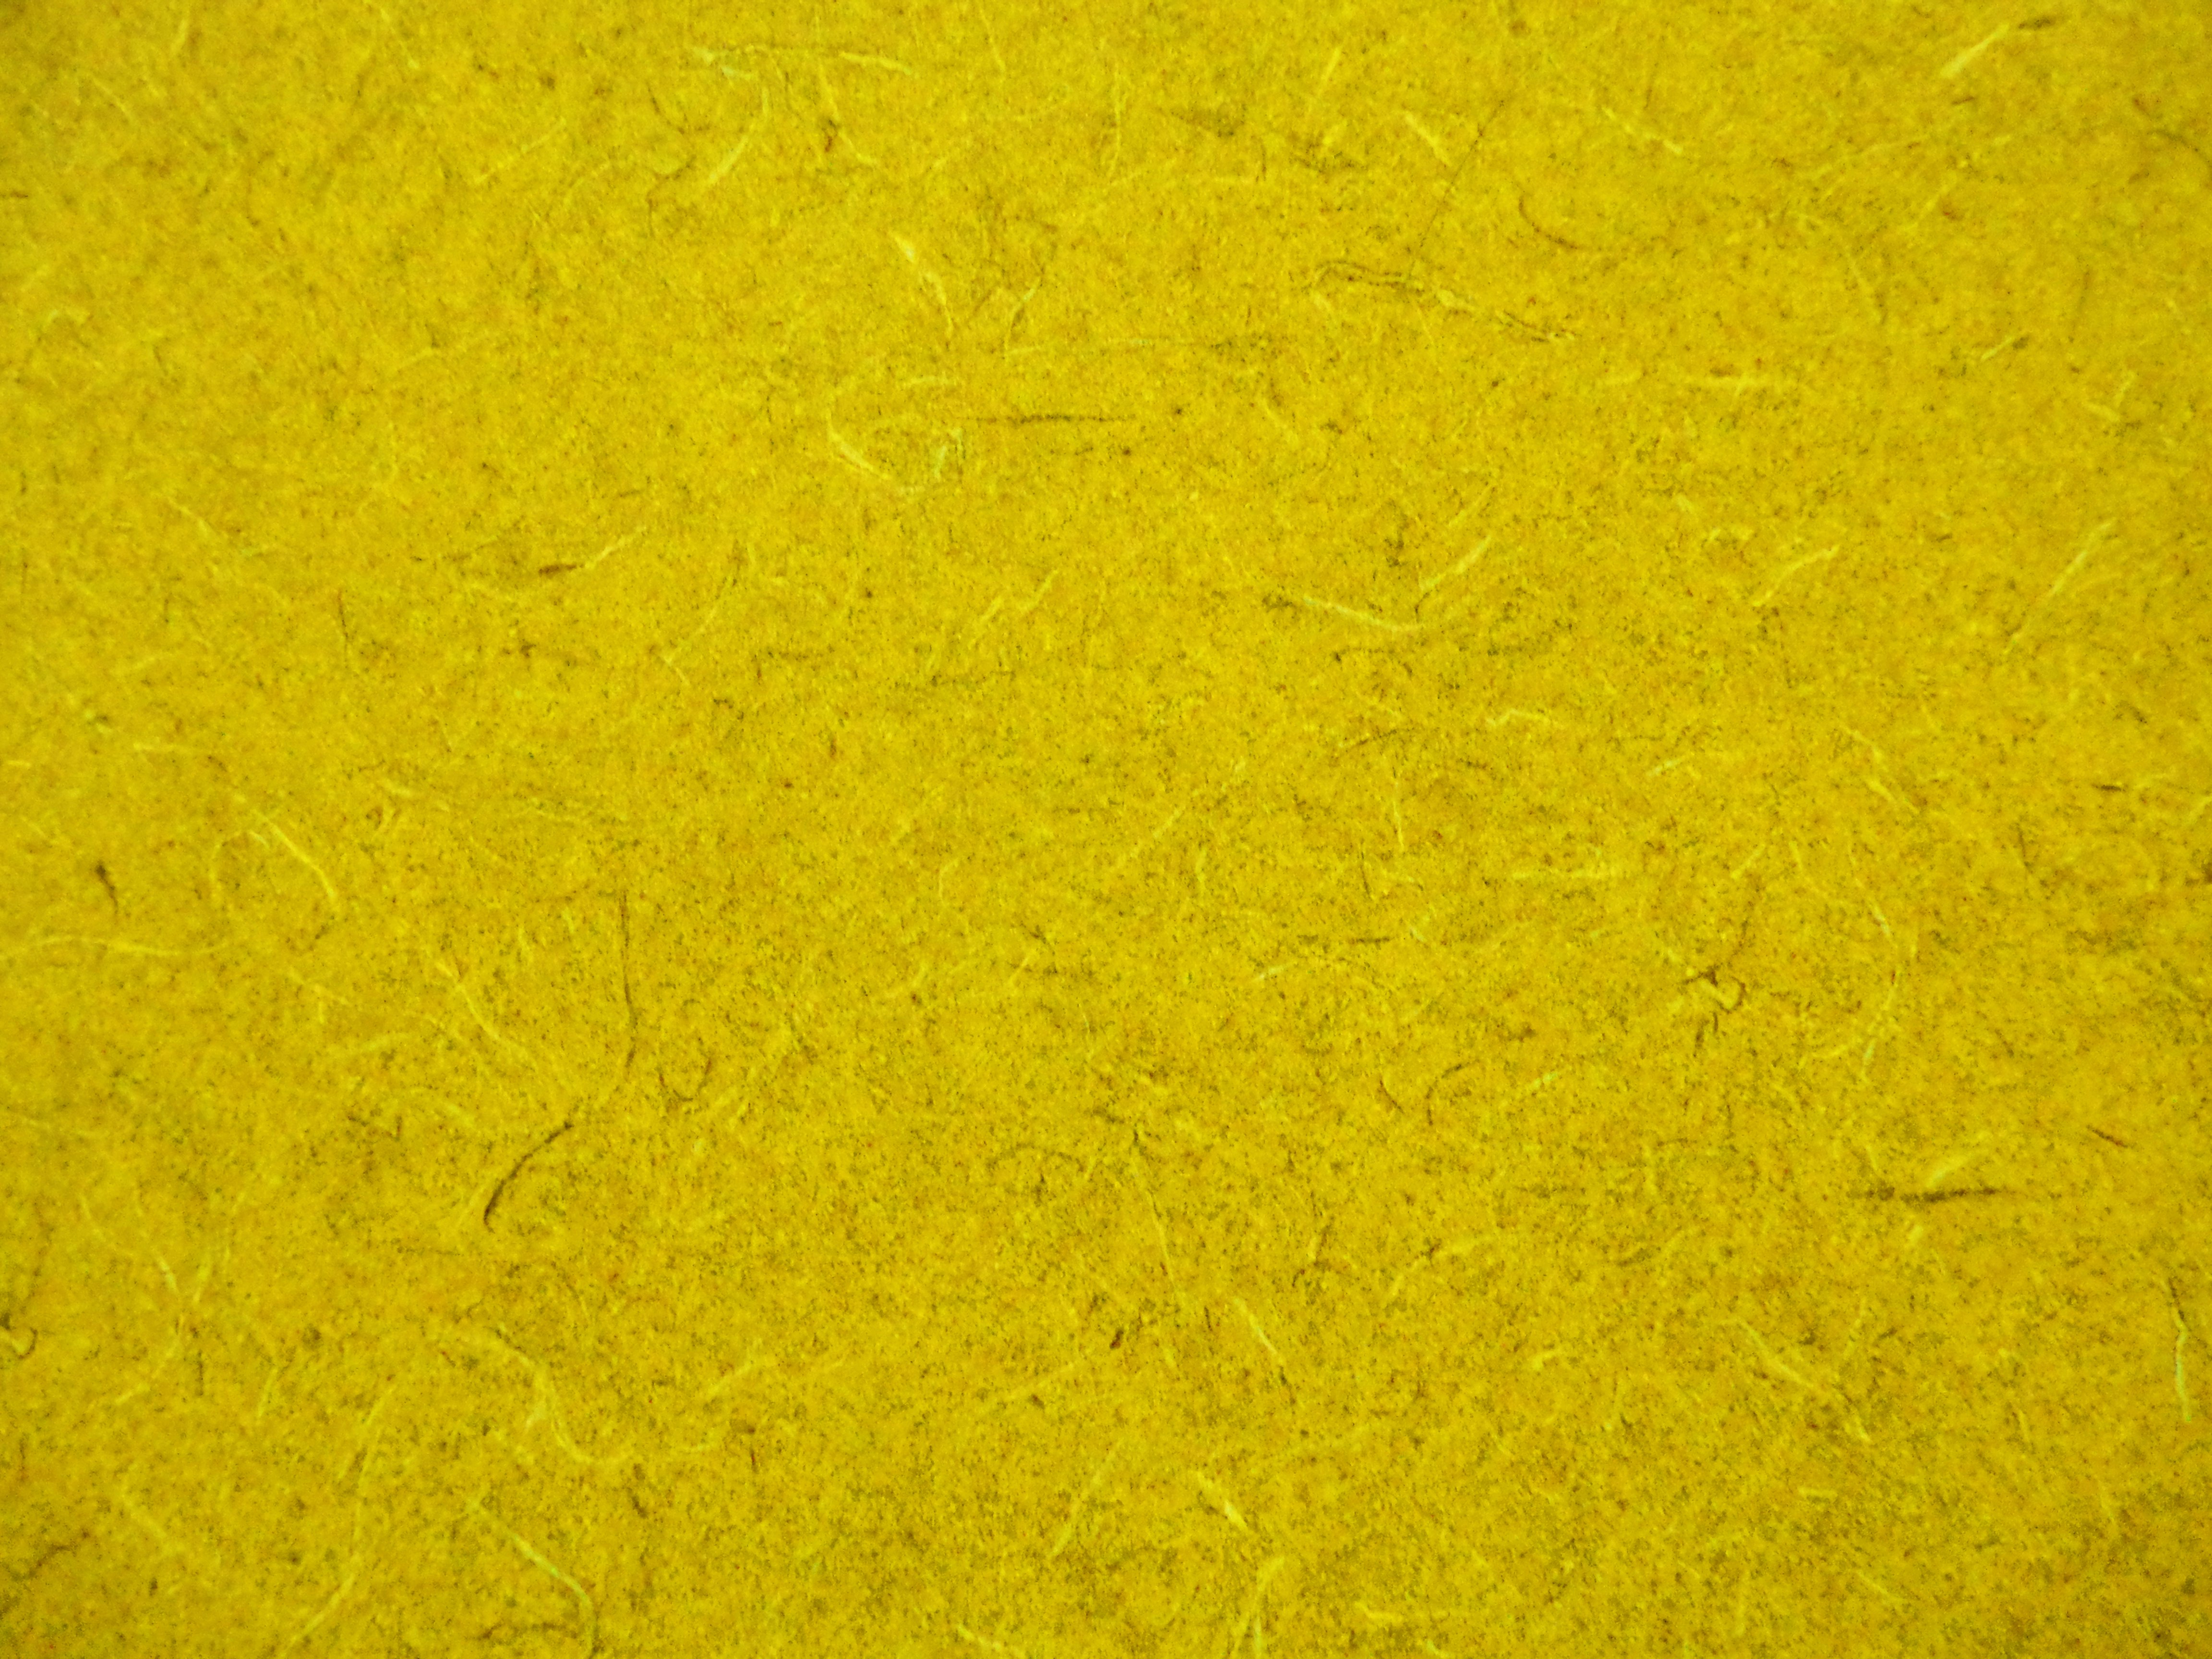 yellow texture background #953